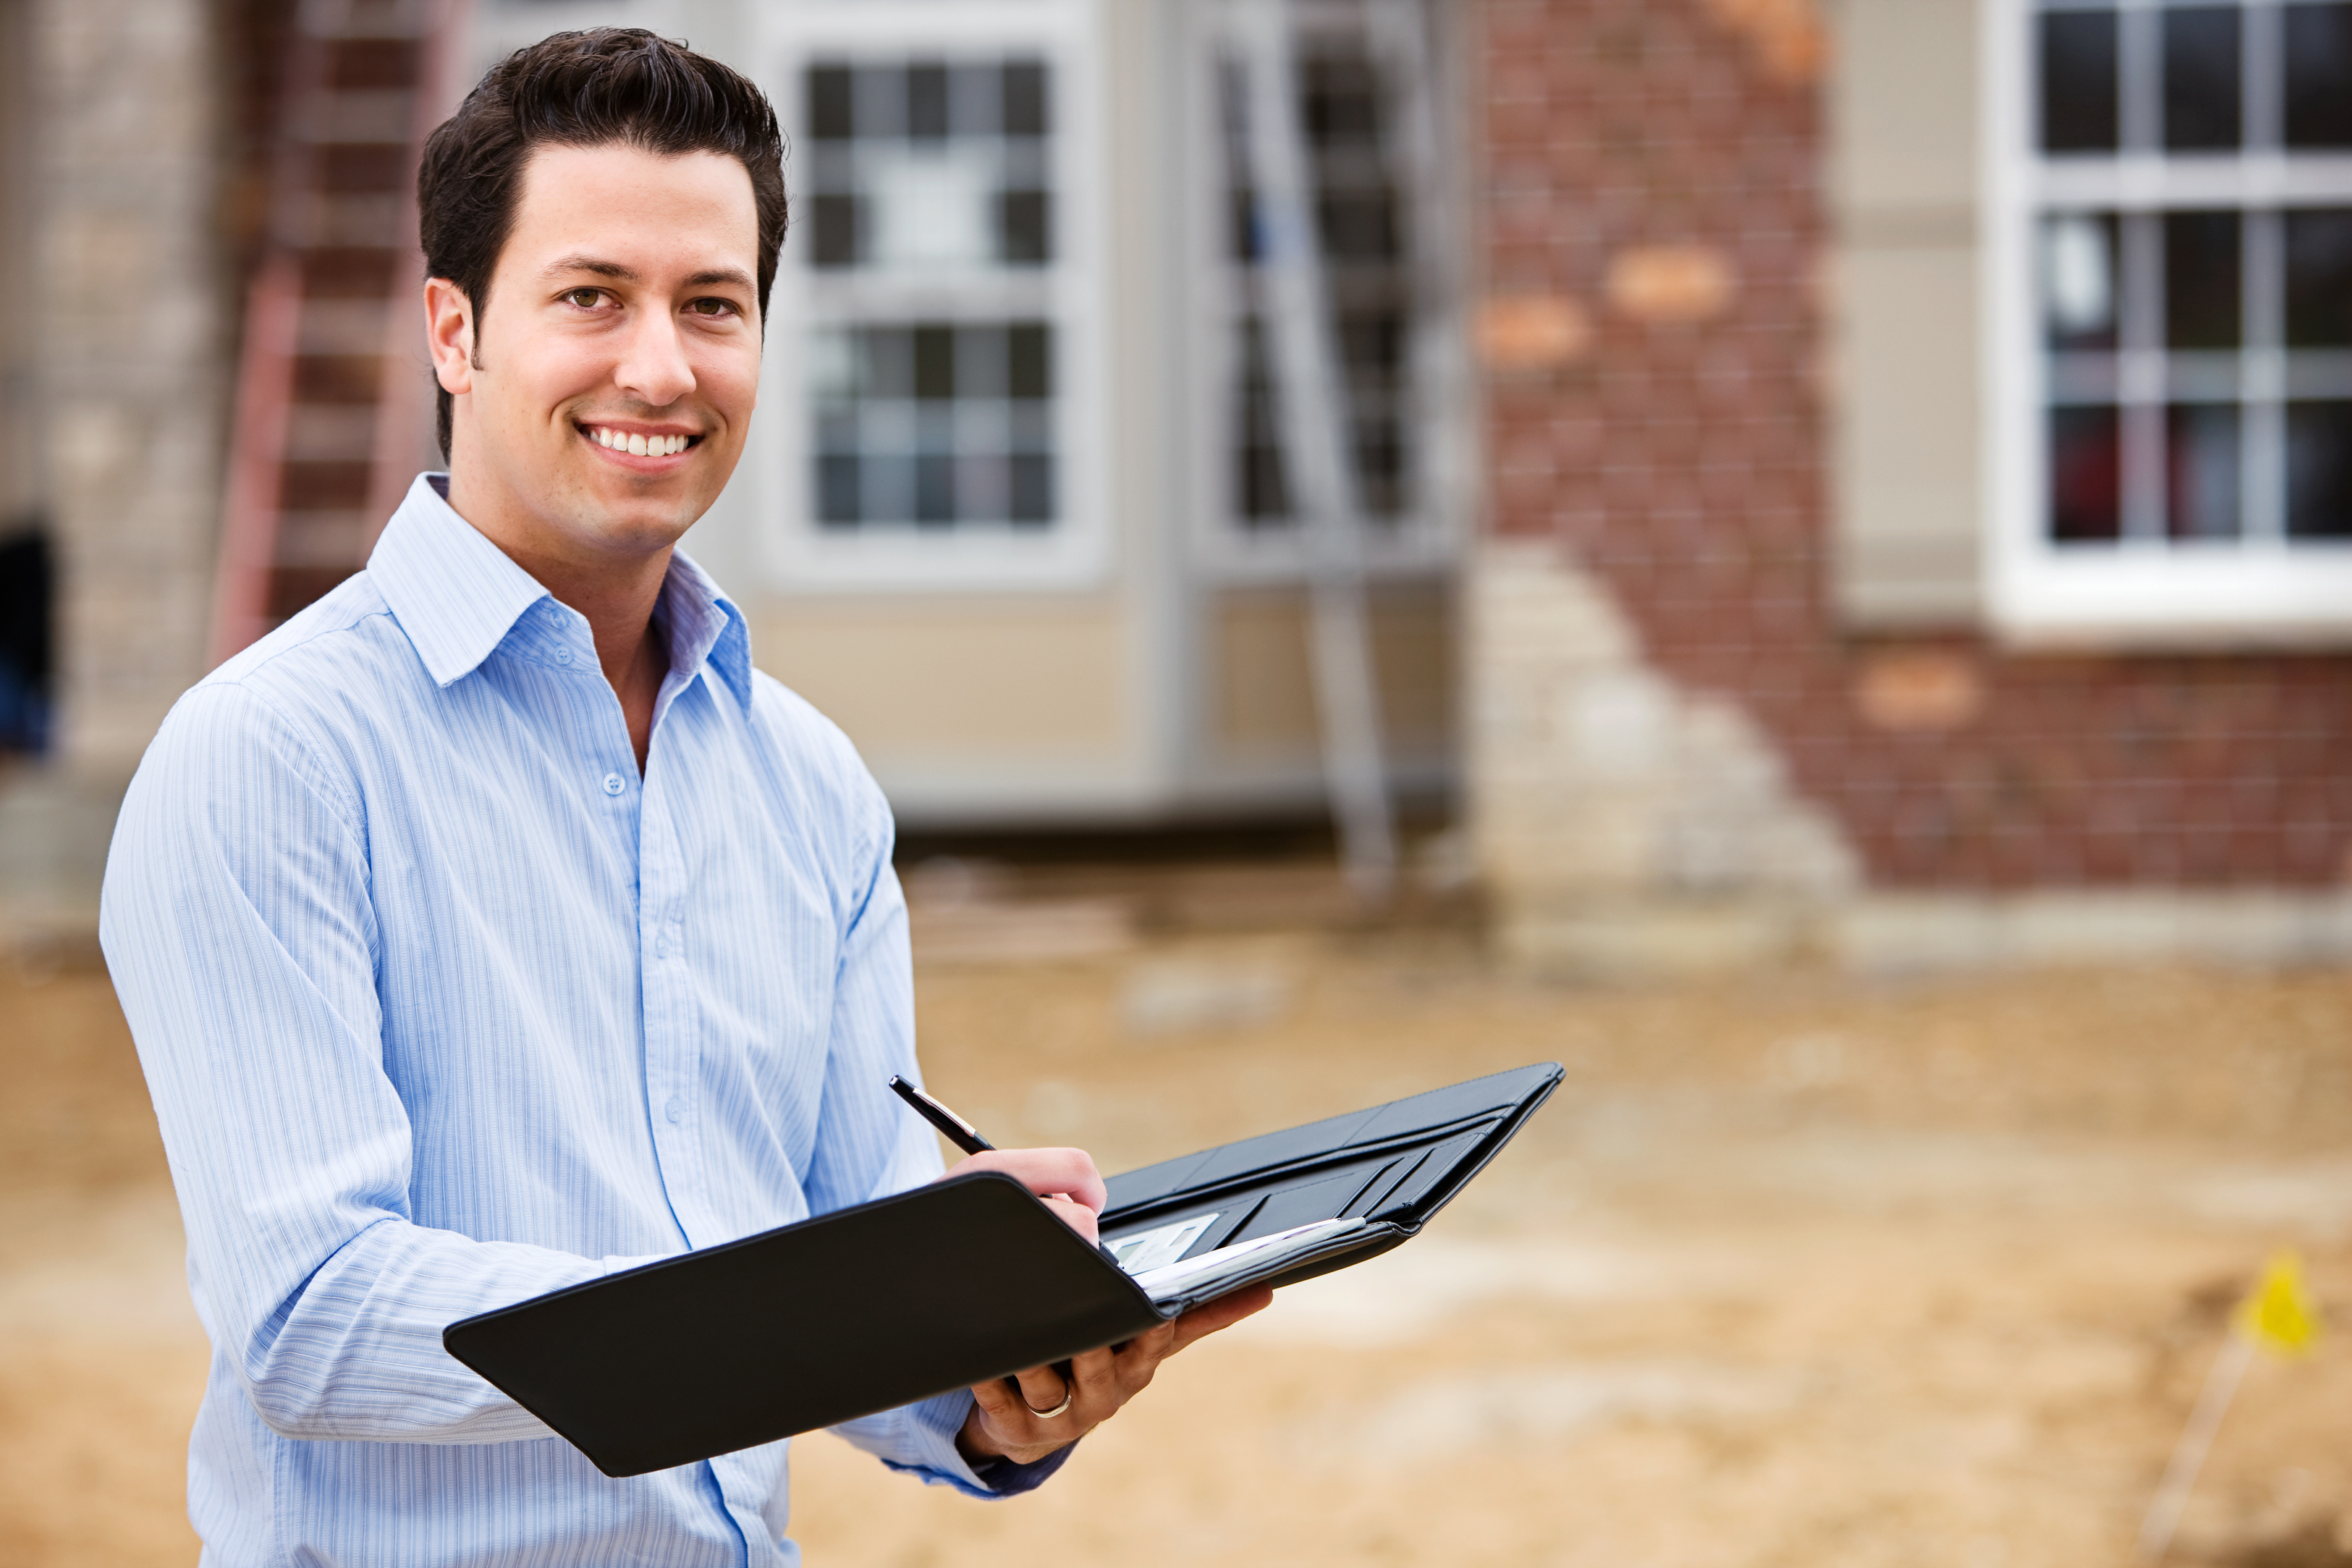 Image of a real estate agent for new construction standing in front of a construction site.